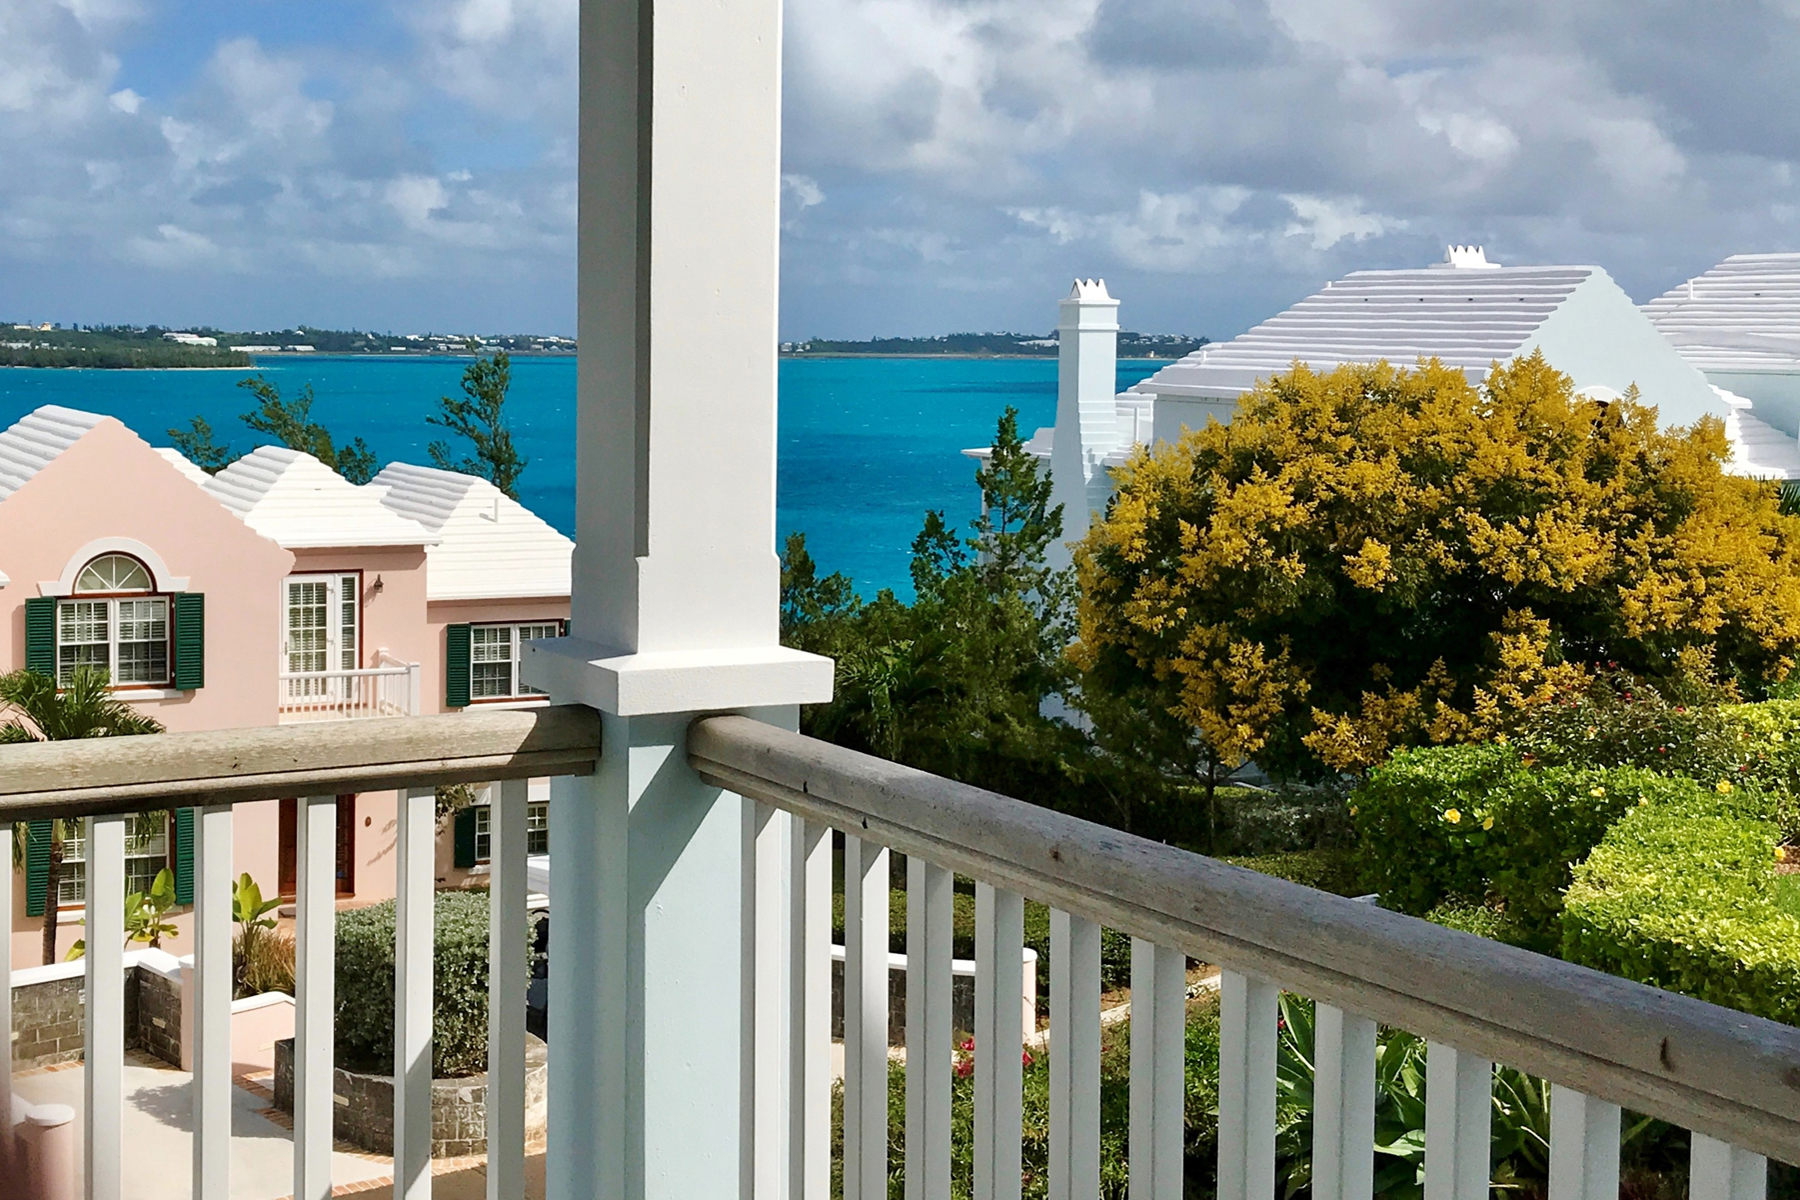 Condo / Townhouse / Flat for Sale at Ship's Hill 2 2 Ship's Hill Lane St Georges Parish, HS02 Bermuda